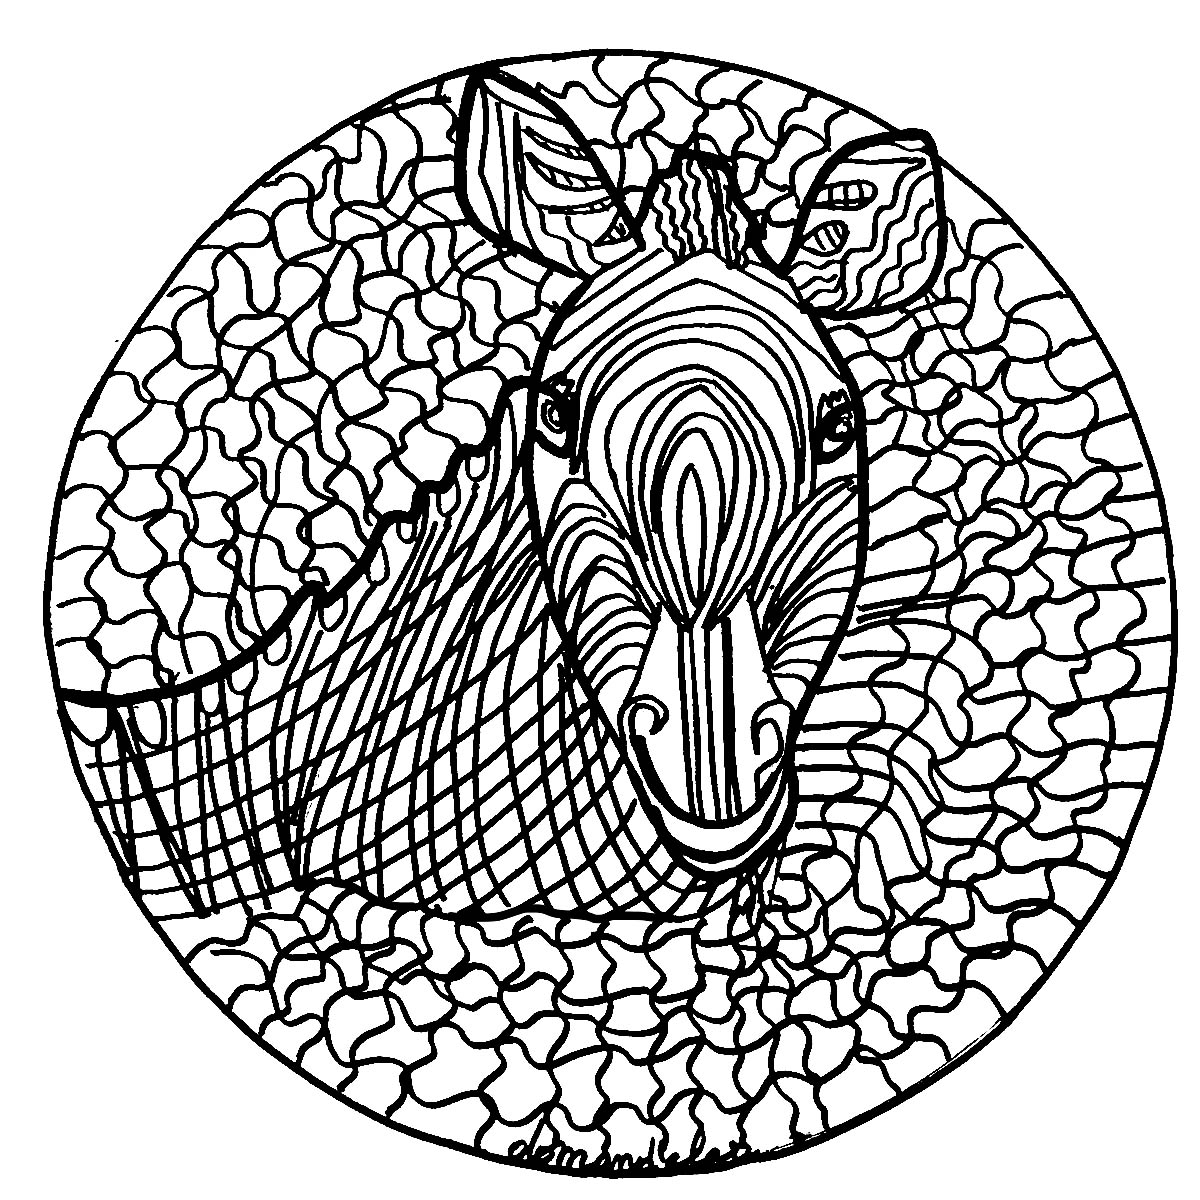 A Mandala featuring a zebra, for those who prefer to color concrete and living elements. Do whatever it takes to get rid of any distractions that may interfere with your coloring.